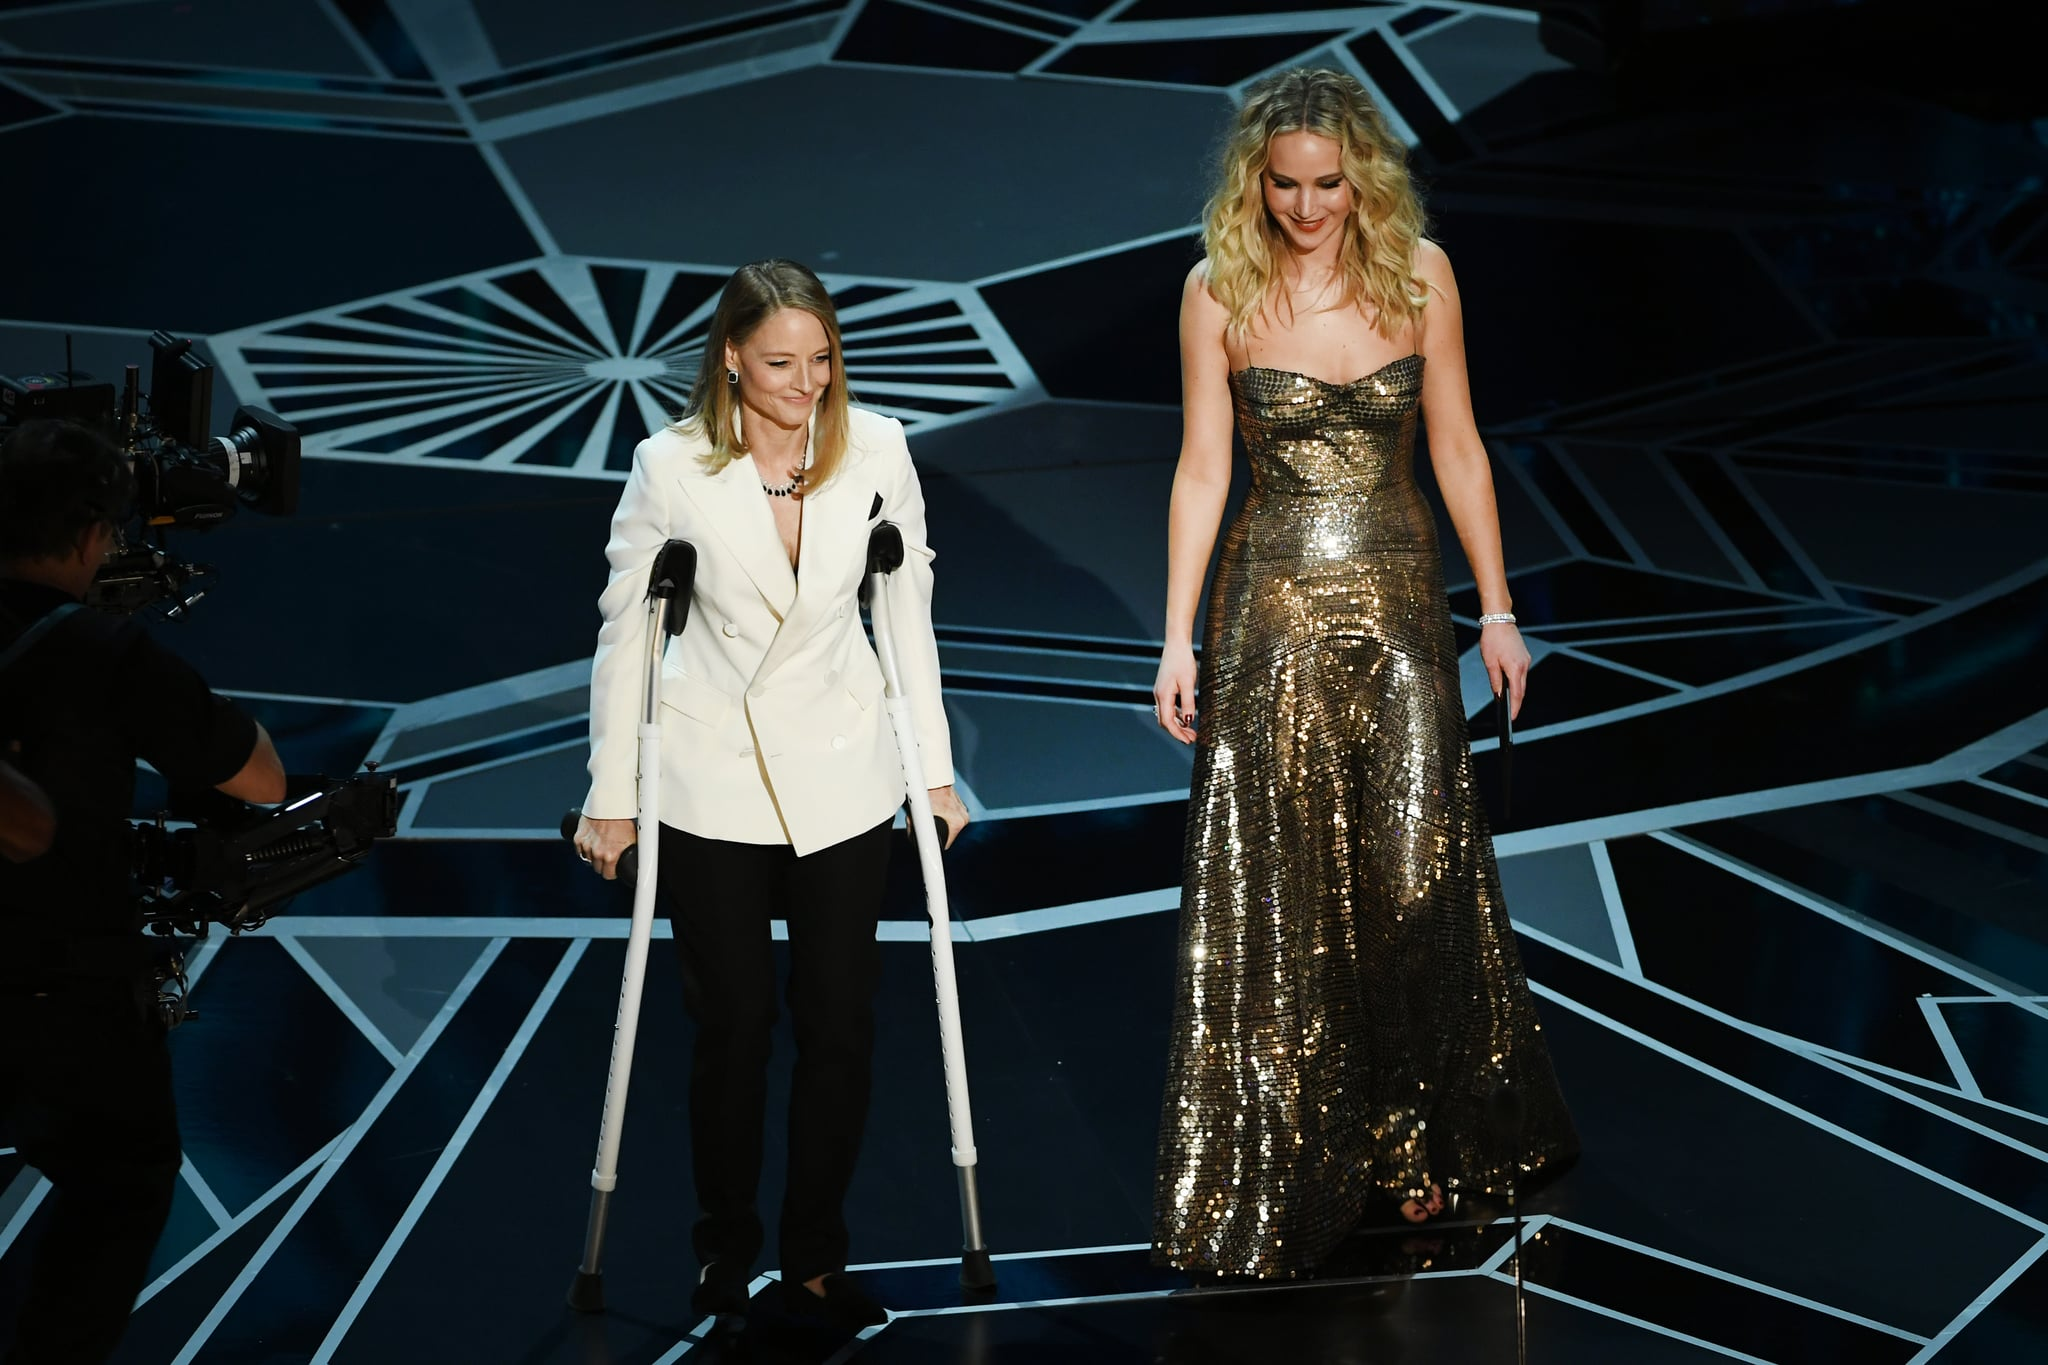 HOLLYWOOD, CA - MARCH 04:  Actors Jodie Foster (L) and Jennifer Lawrence speak onstage during the 90th Annual Academy Awards at the Dolby Theatre at Hollywood & Highland Center on March 4, 2018 in Hollywood, California.  (Photo by Kevin Winter/Getty Images)